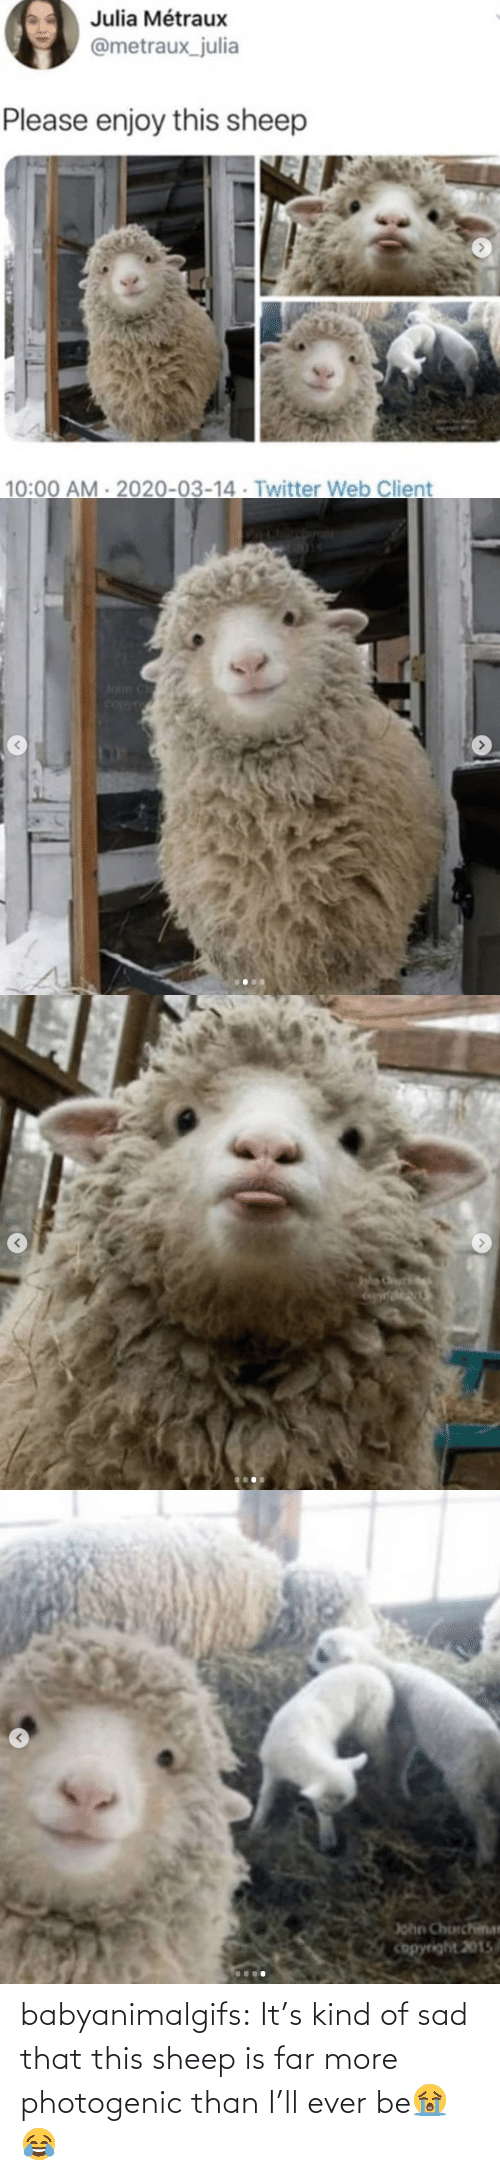 Far: babyanimalgifs:  It's kind of sad that this sheep is far more photogenic than I'll ever be😭😂